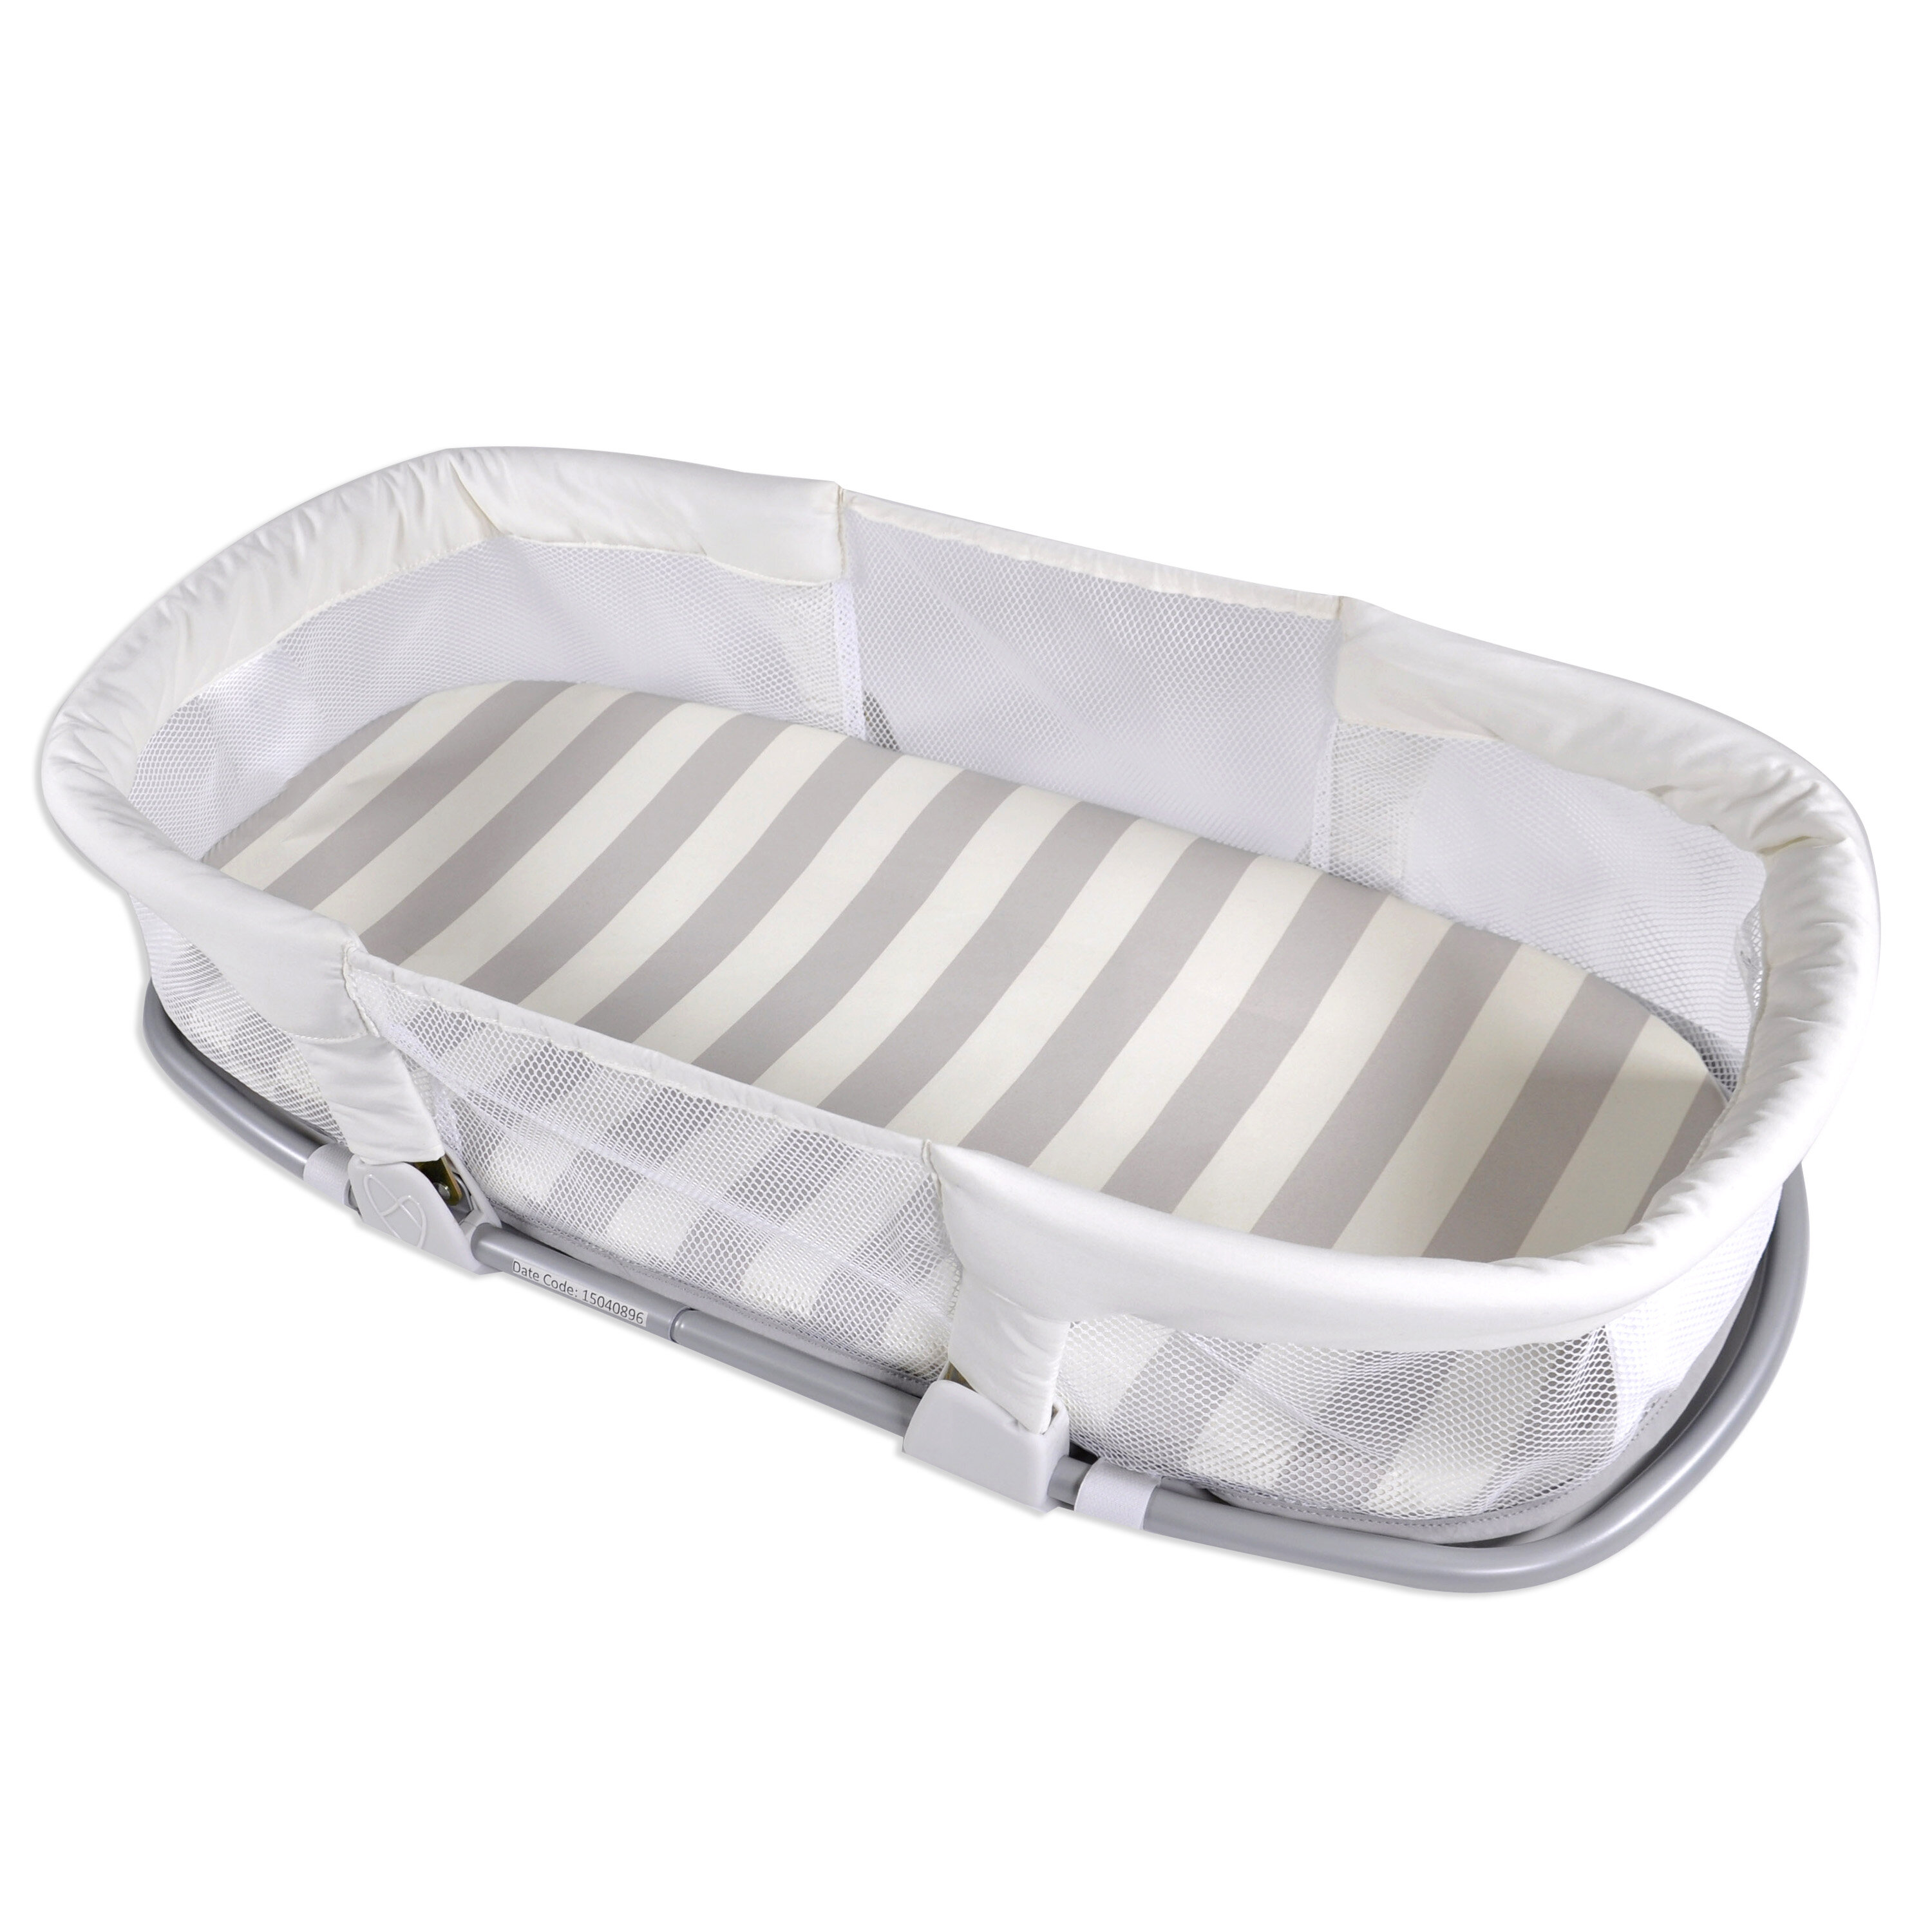 Other Baby Bean Bag With Adjustable Safety Harness & 2 Covers Traveling